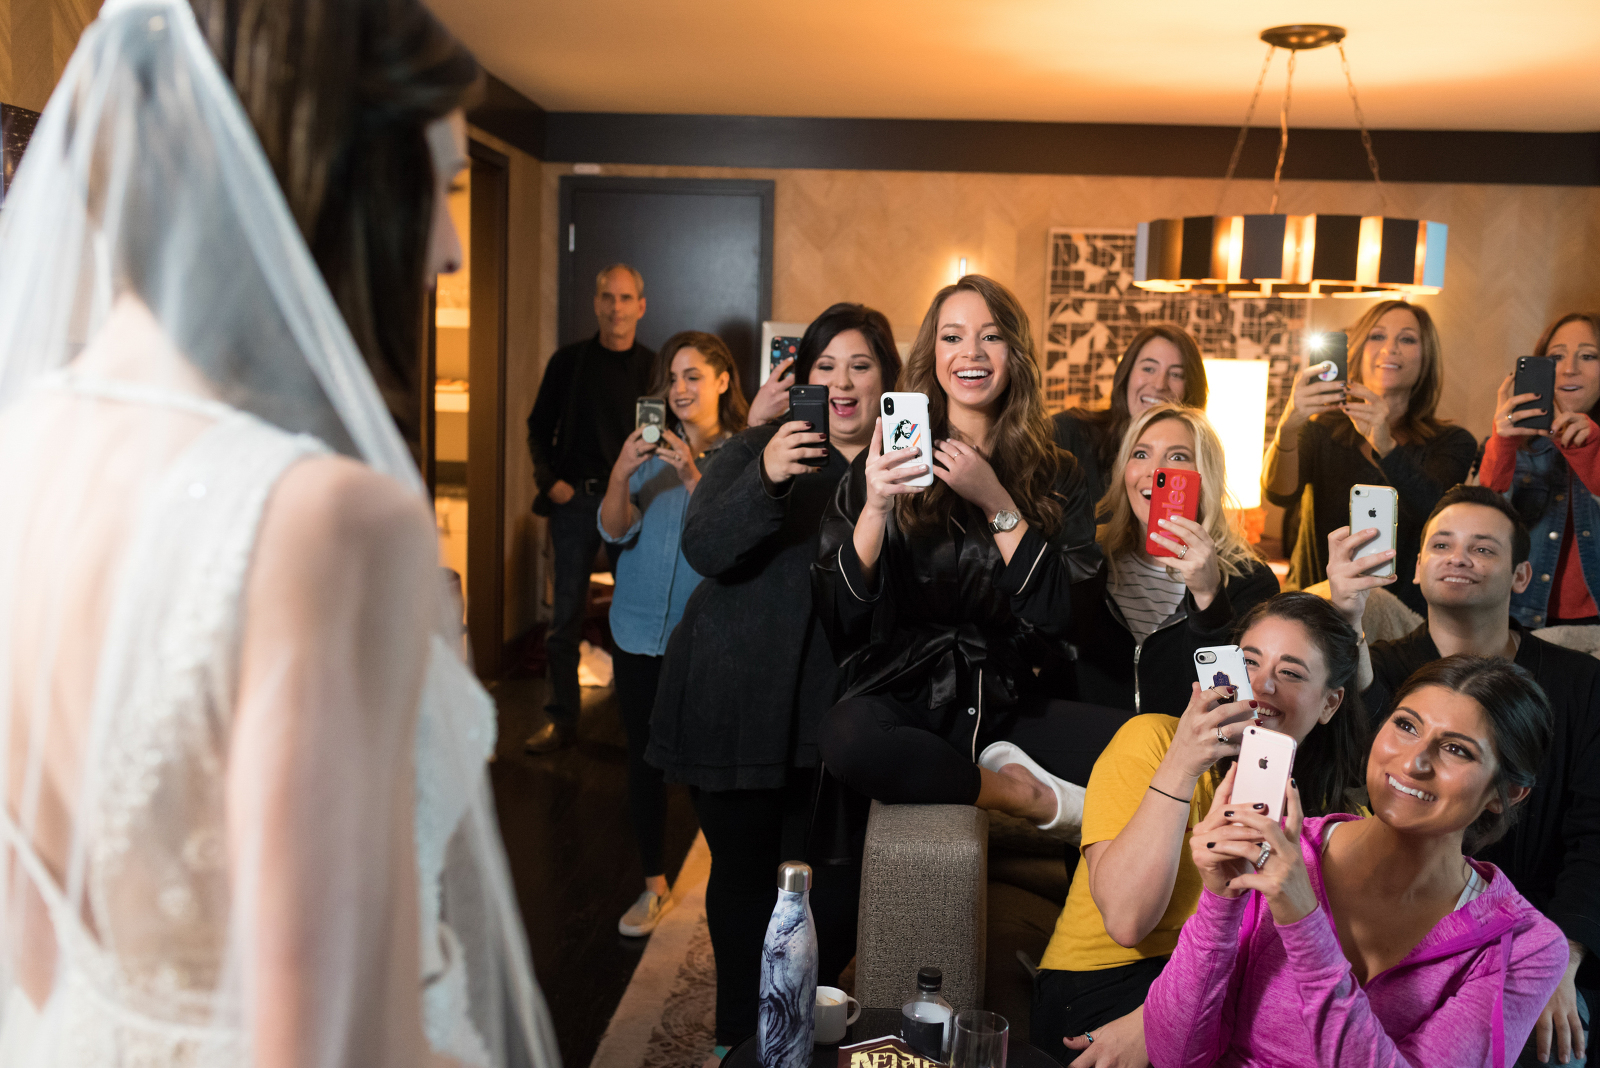 Wedding party and supportive family photographing bride Elana with wave of iphones. Photographed by Candice Cusic